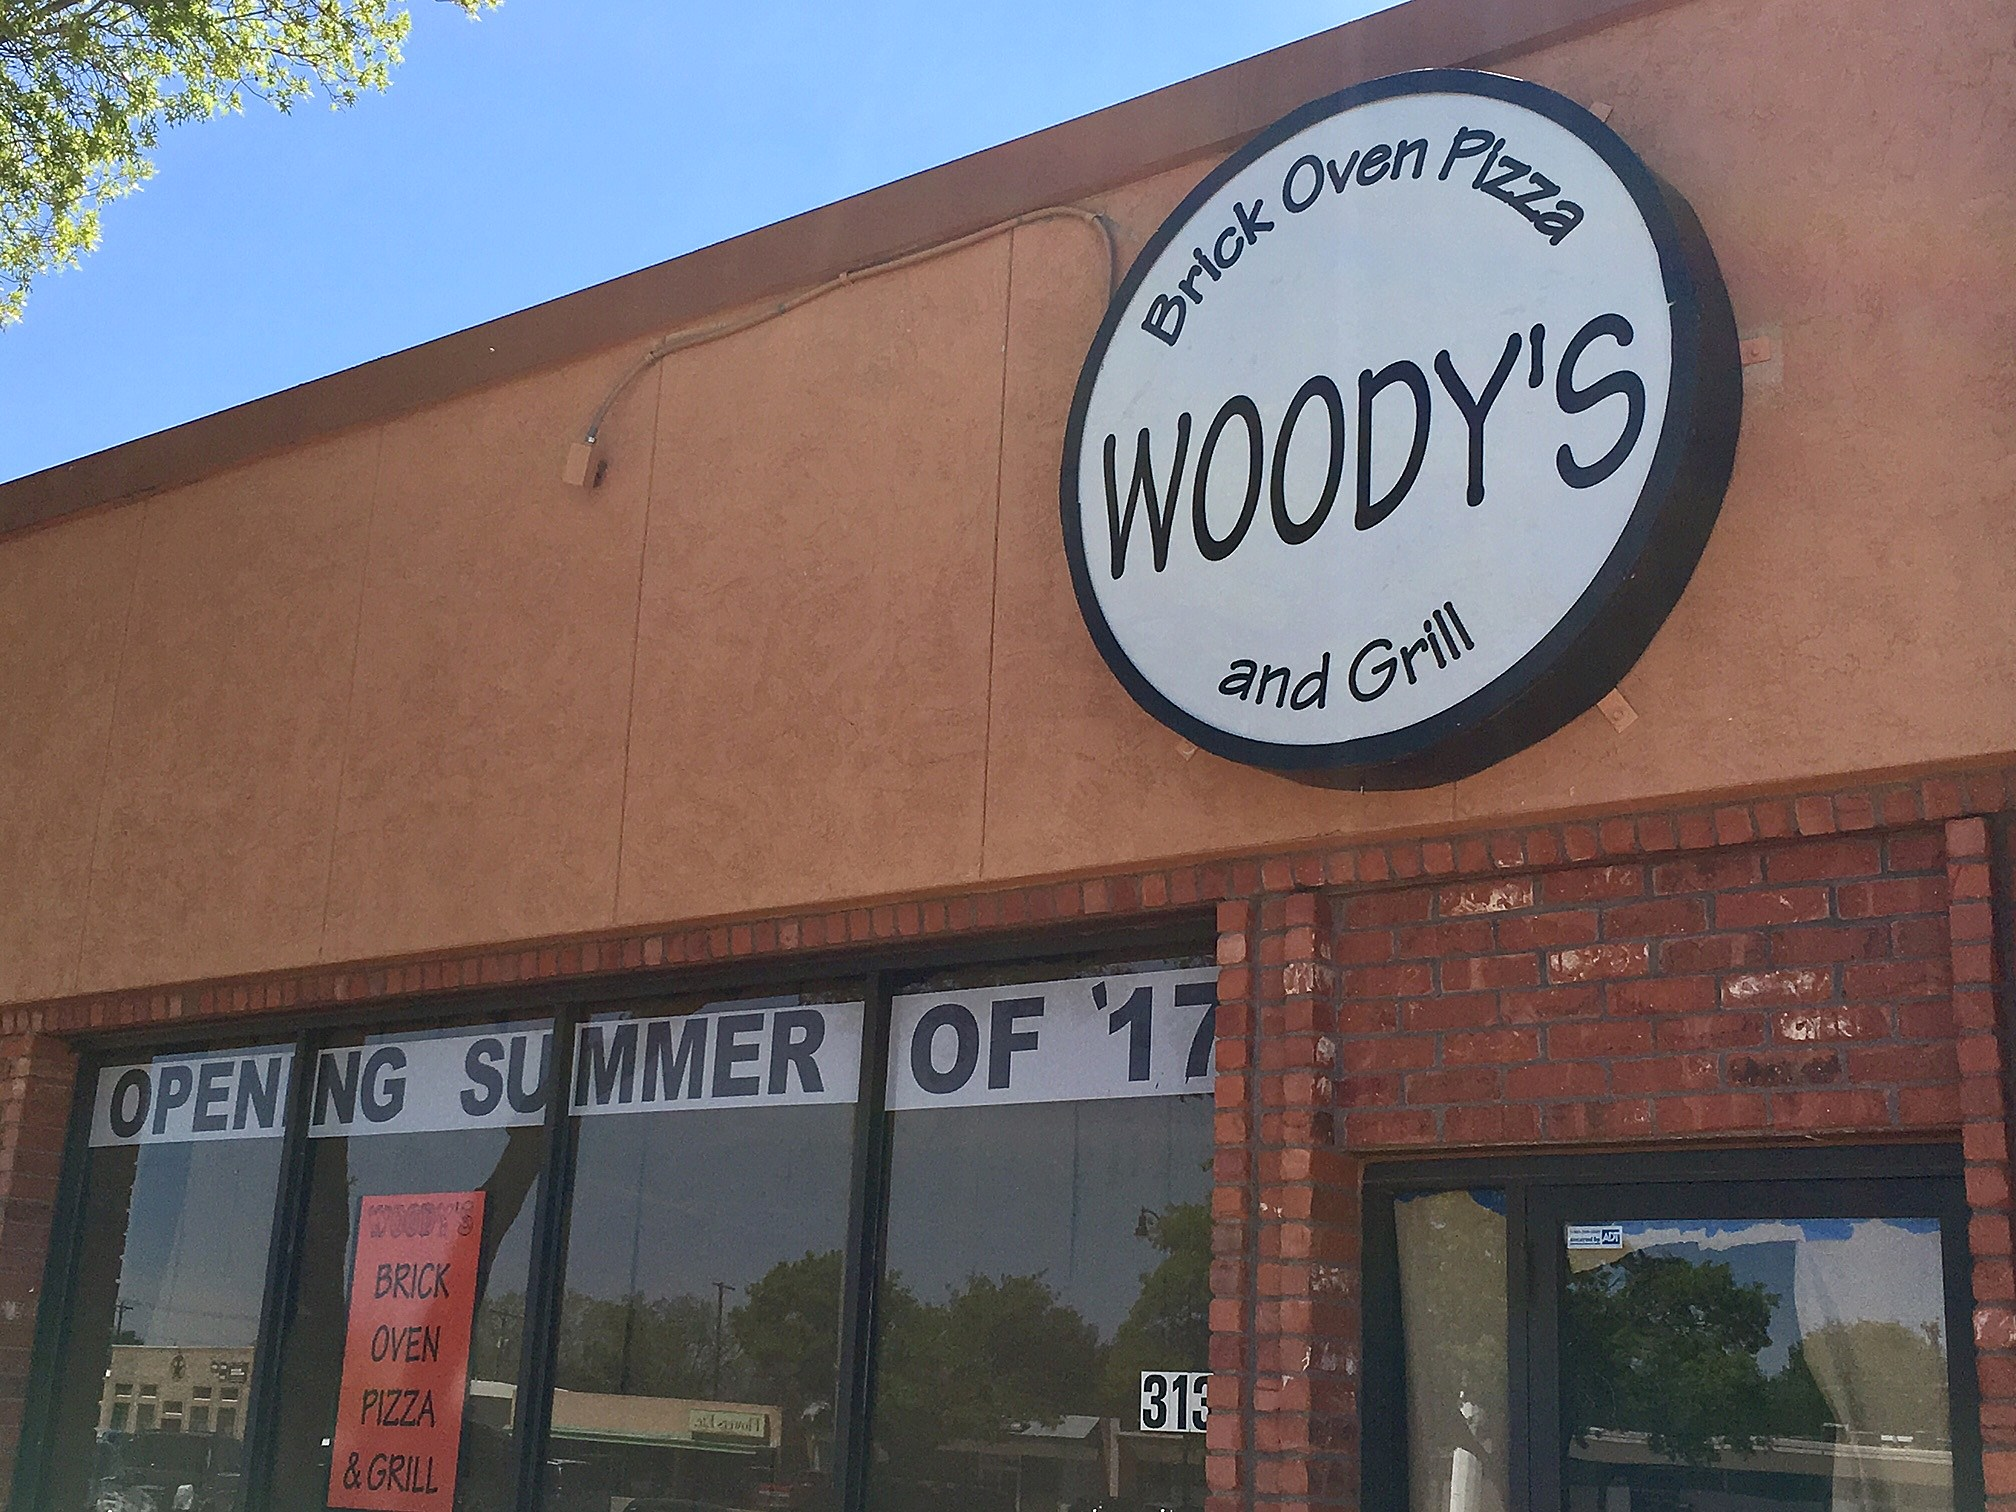 Woody's pizza in Lubbock, Texas